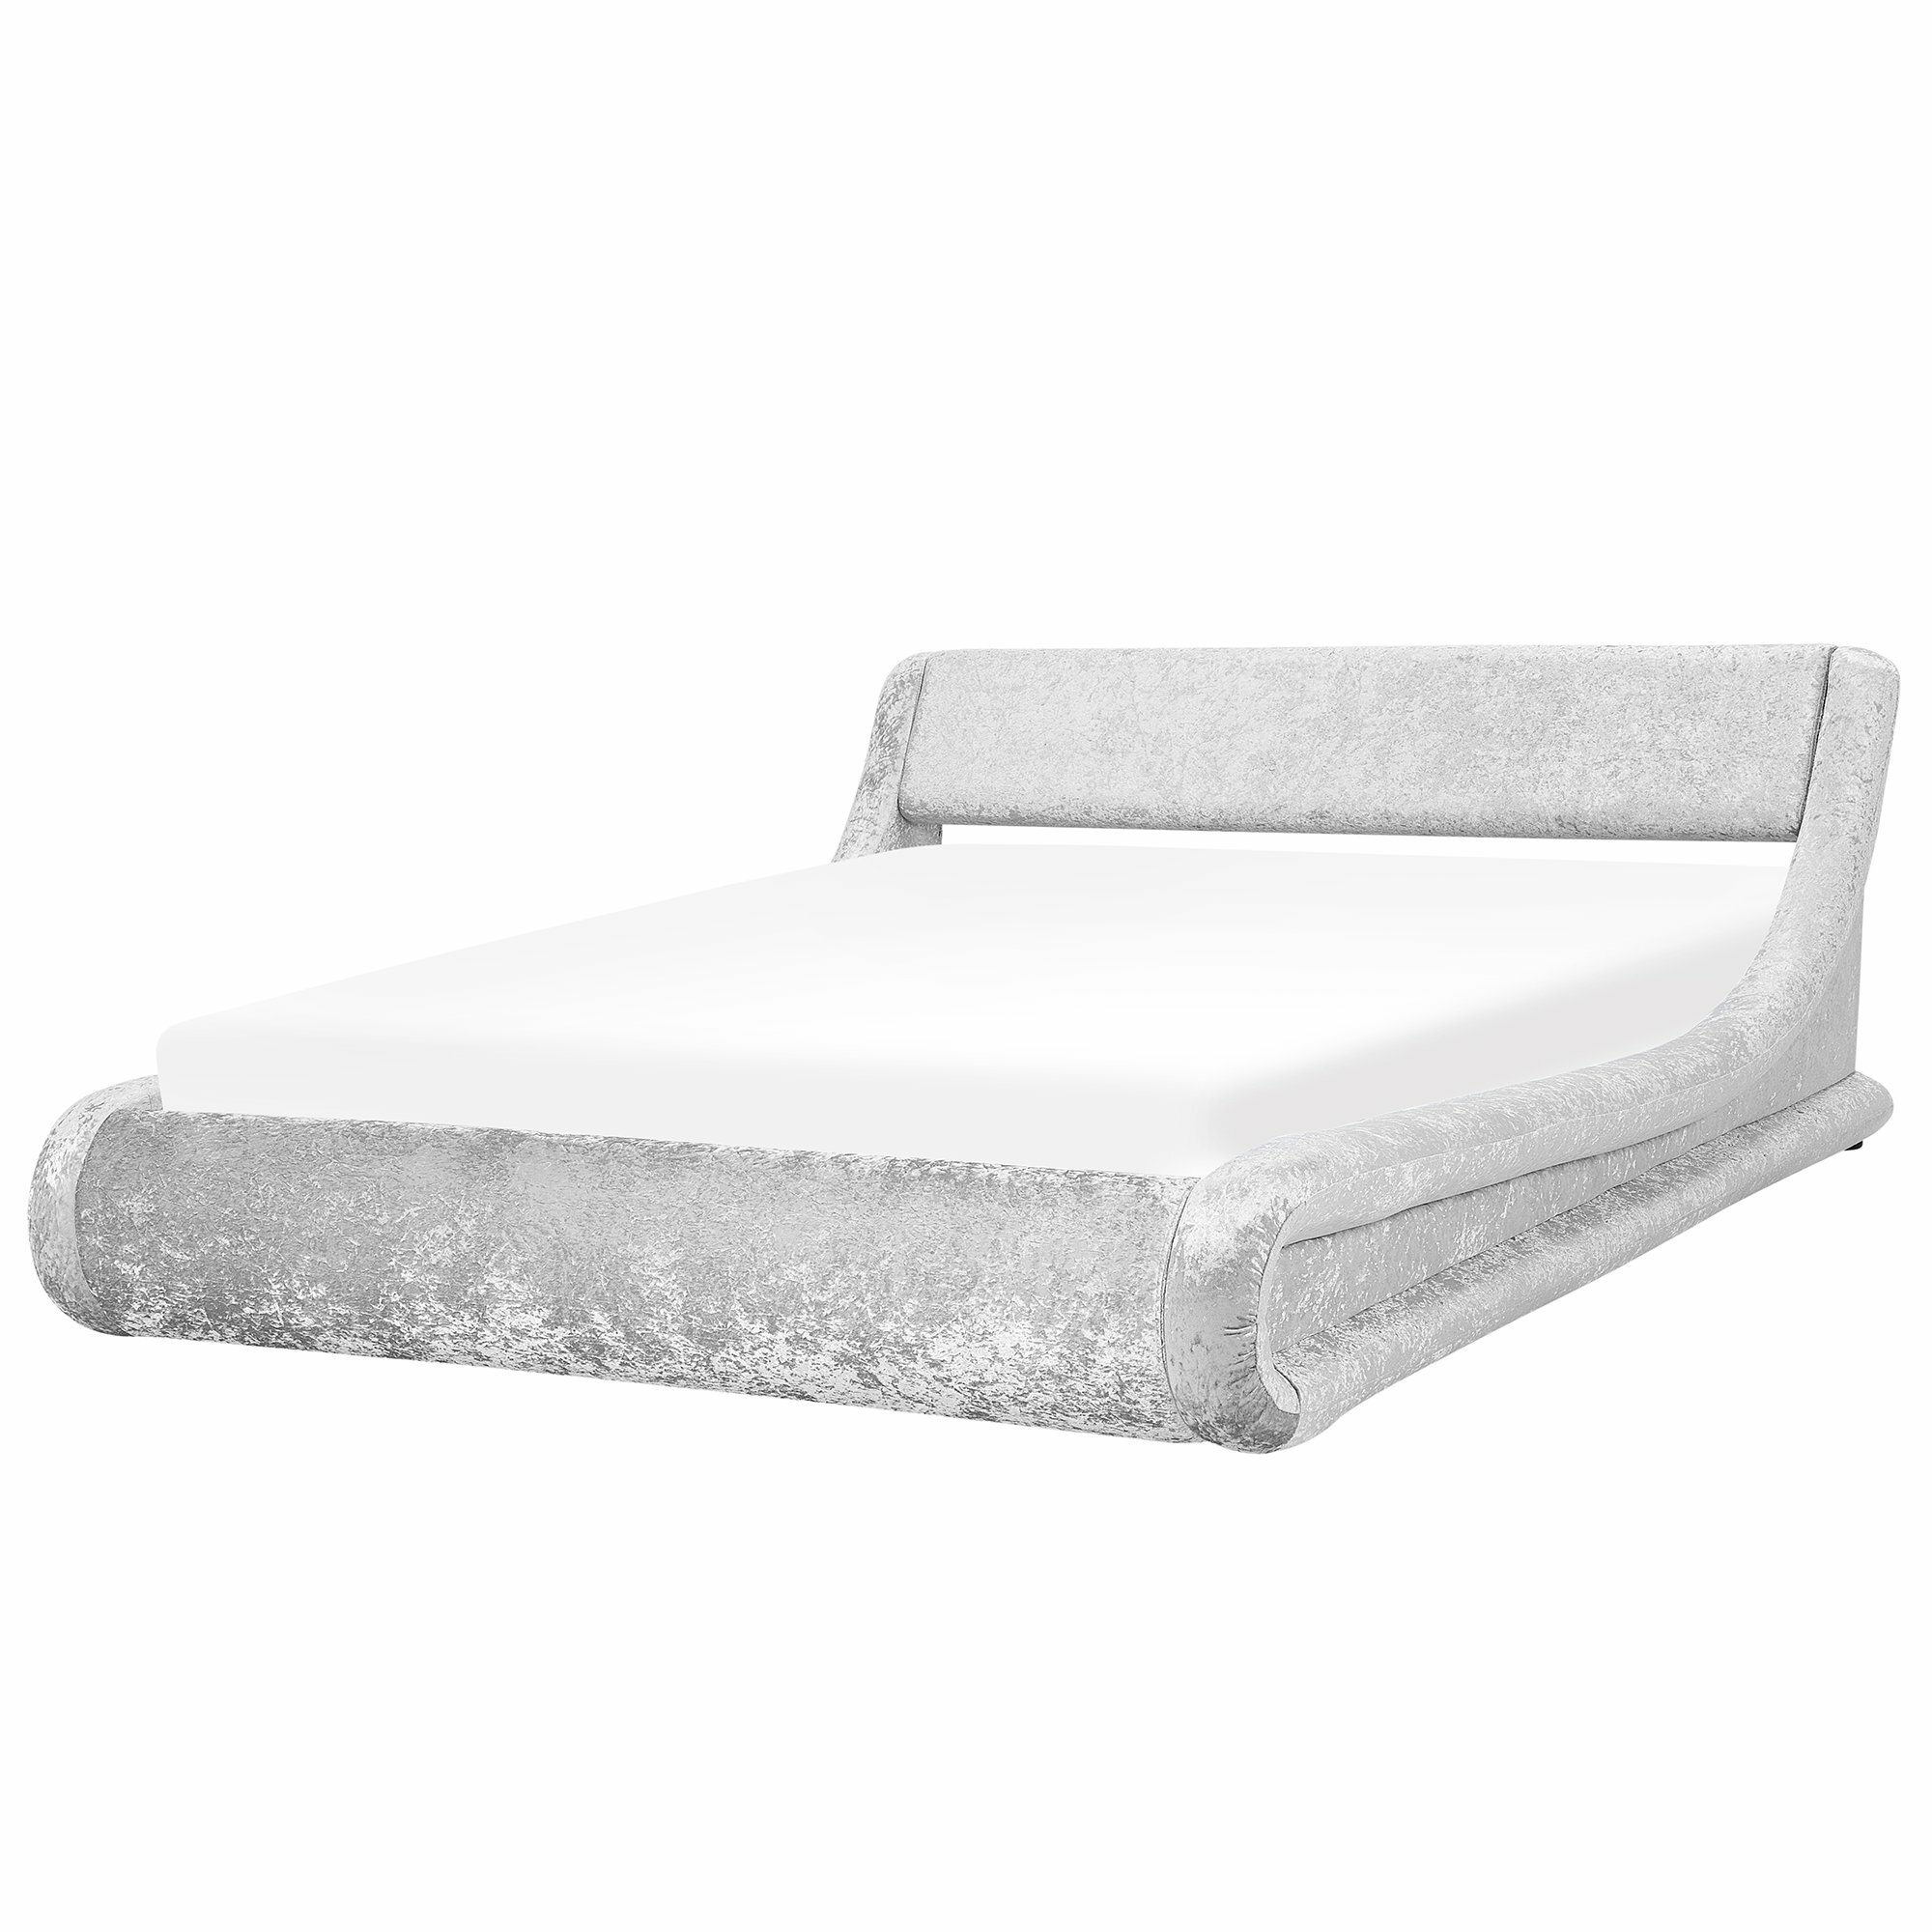 Groovy European Kingsize Upholstered Ottoman Bed Pabps2019 Chair Design Images Pabps2019Com